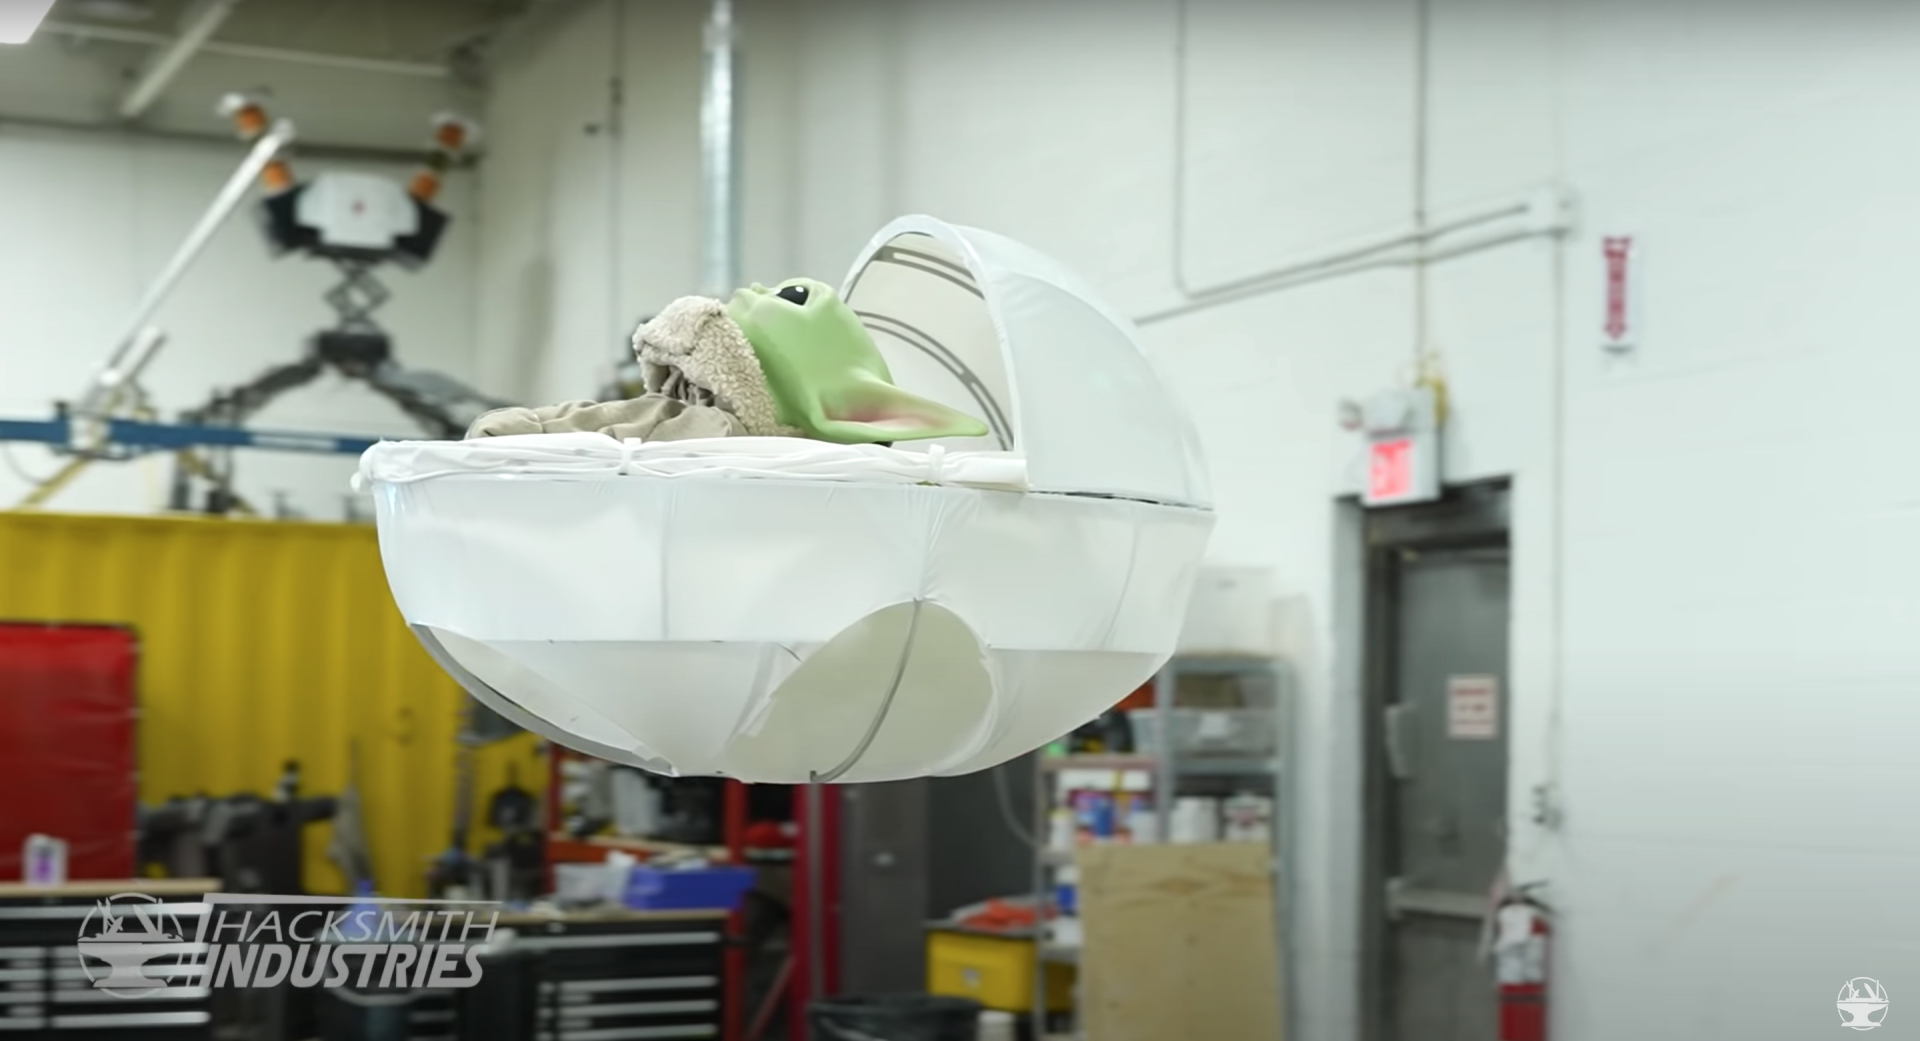 Engineers at The Hacksmith YouTube channel made a real-life Baby Yoda cradle that can float and identify storm troopers.